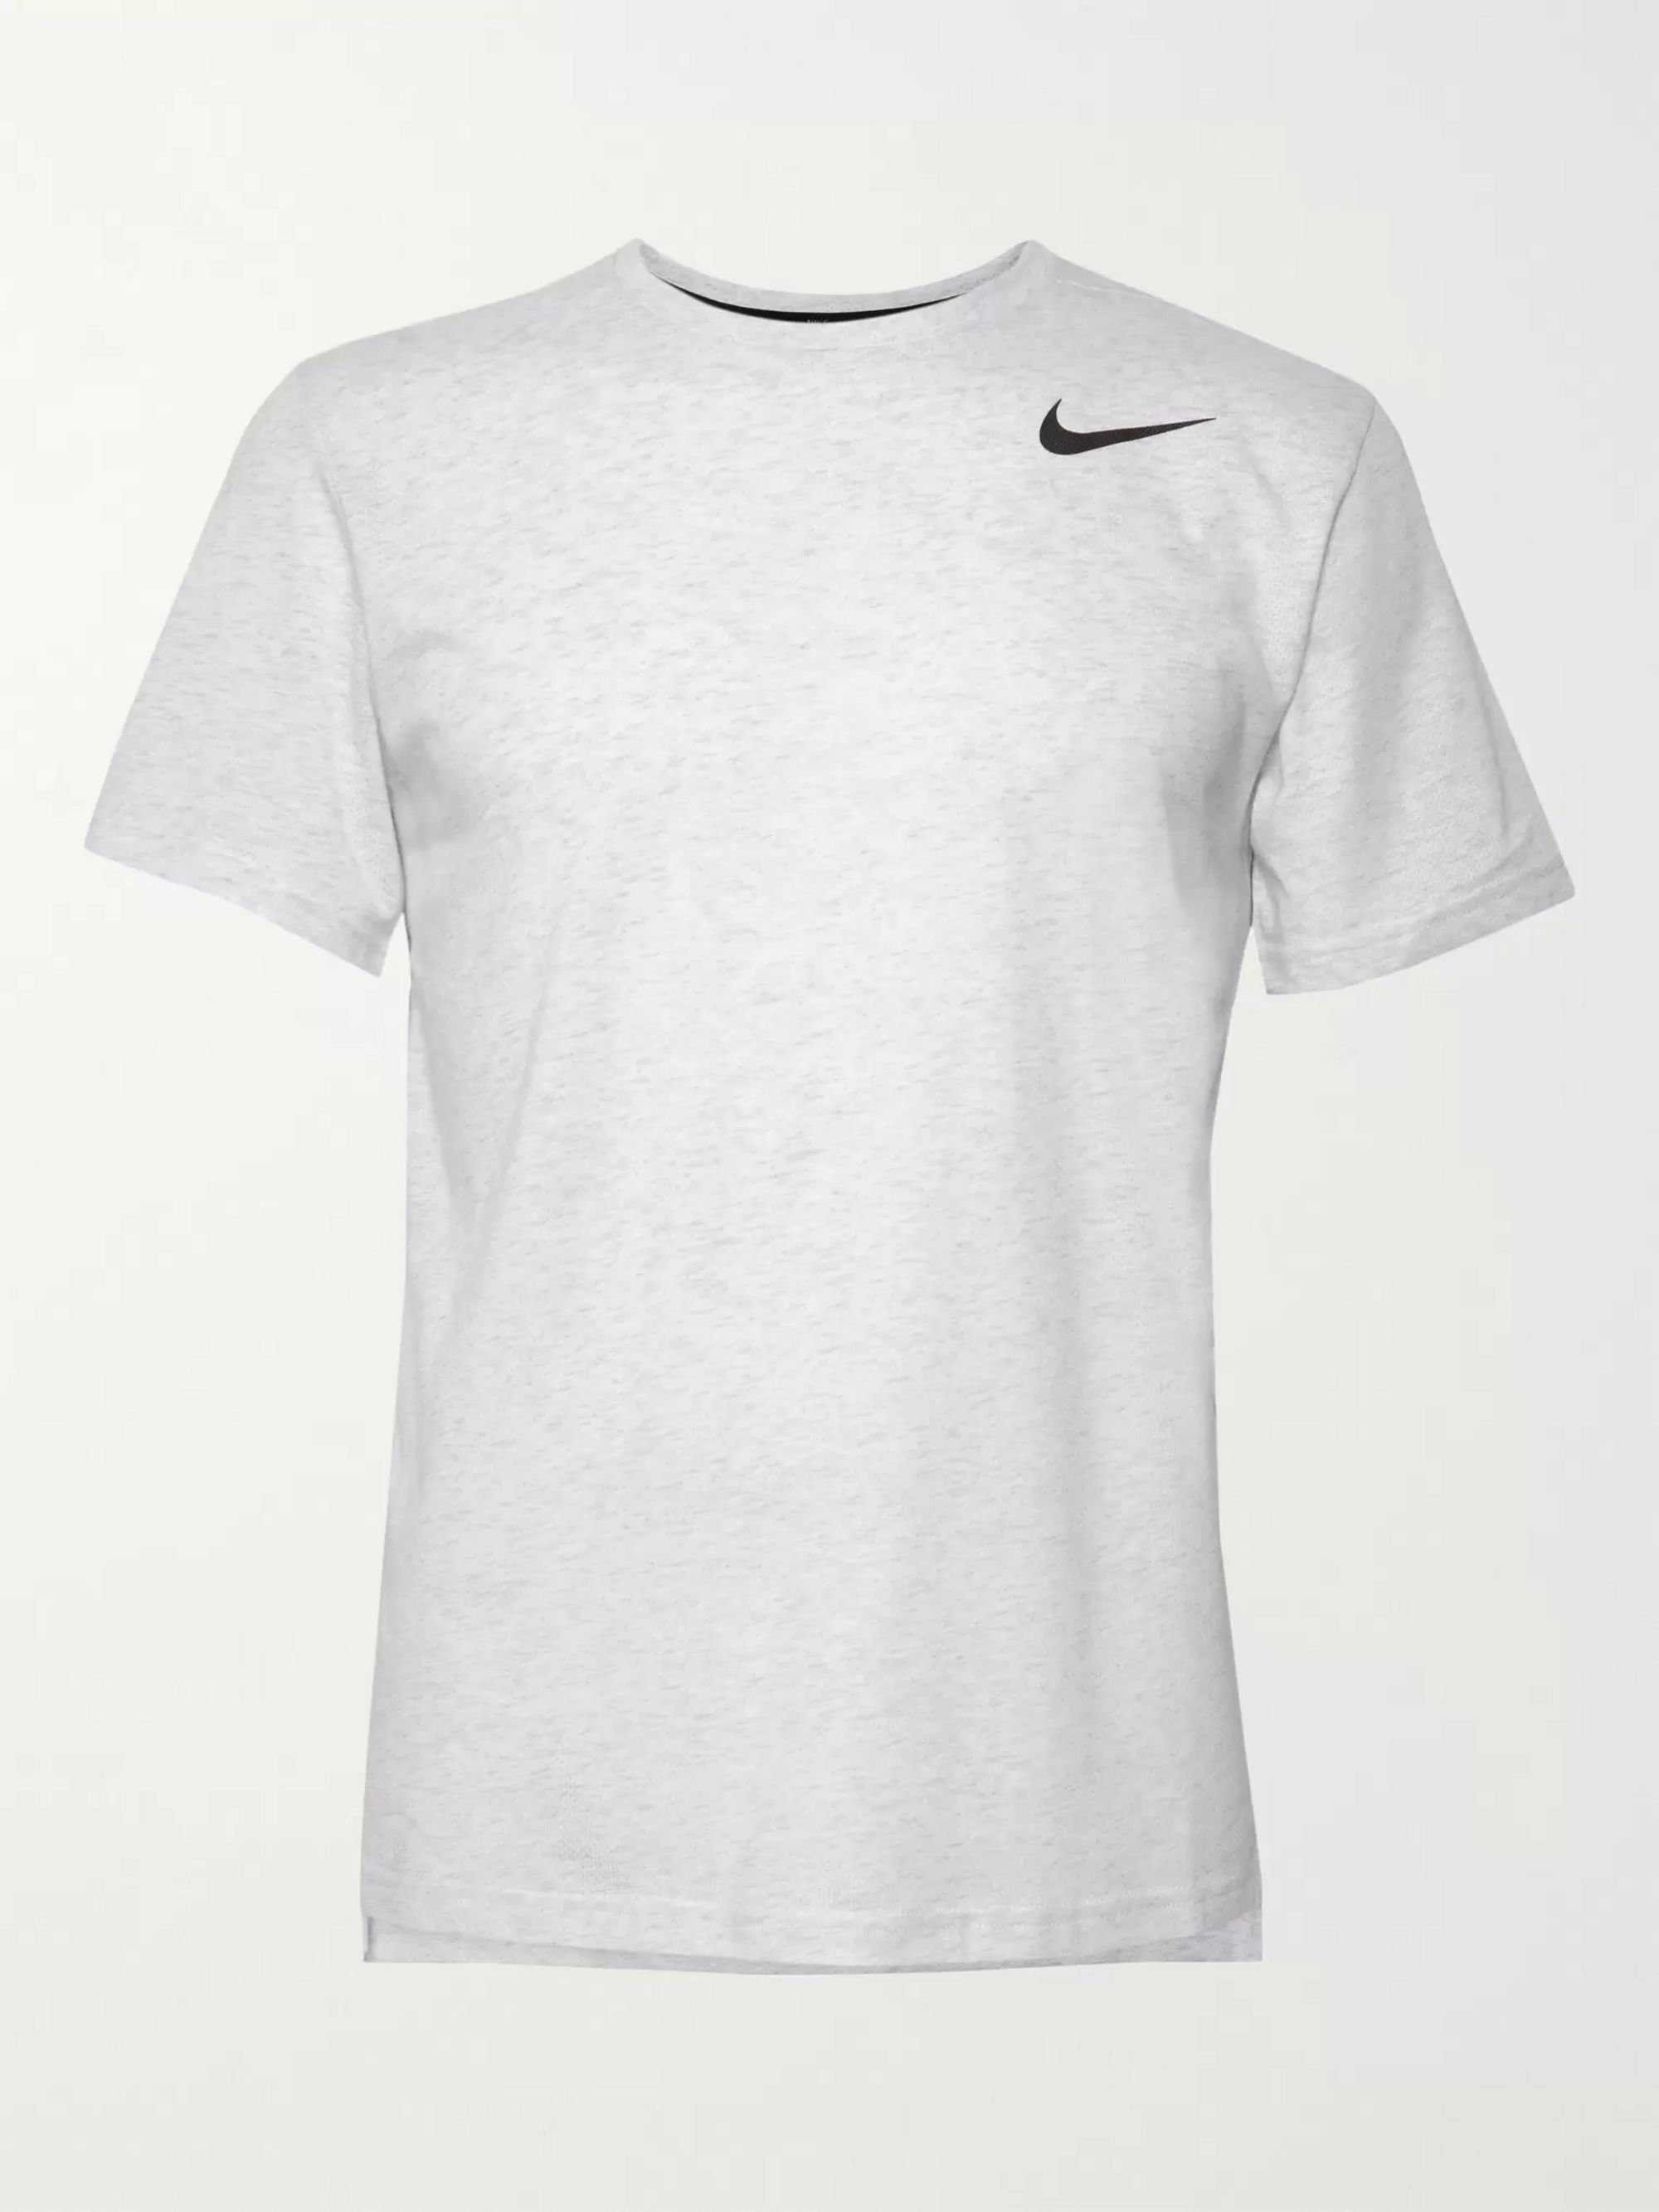 Nike Training Breathe Perforated Dri-FIT T-Shirt